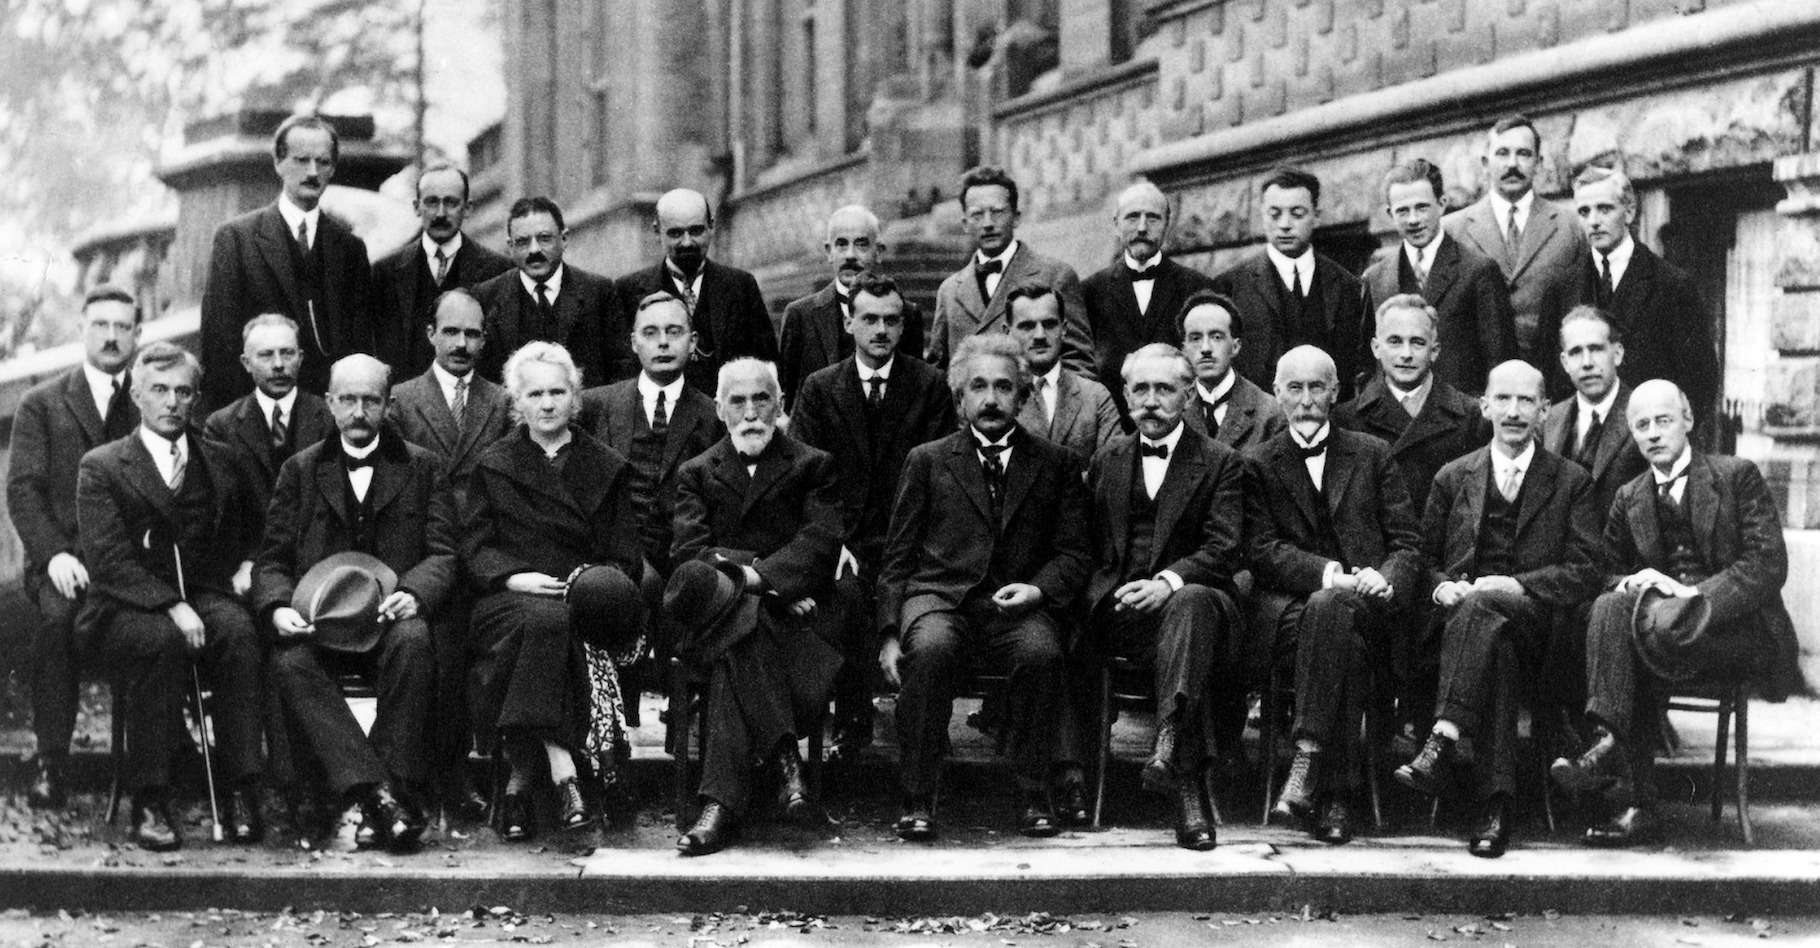 The 5th Conference - Solvay